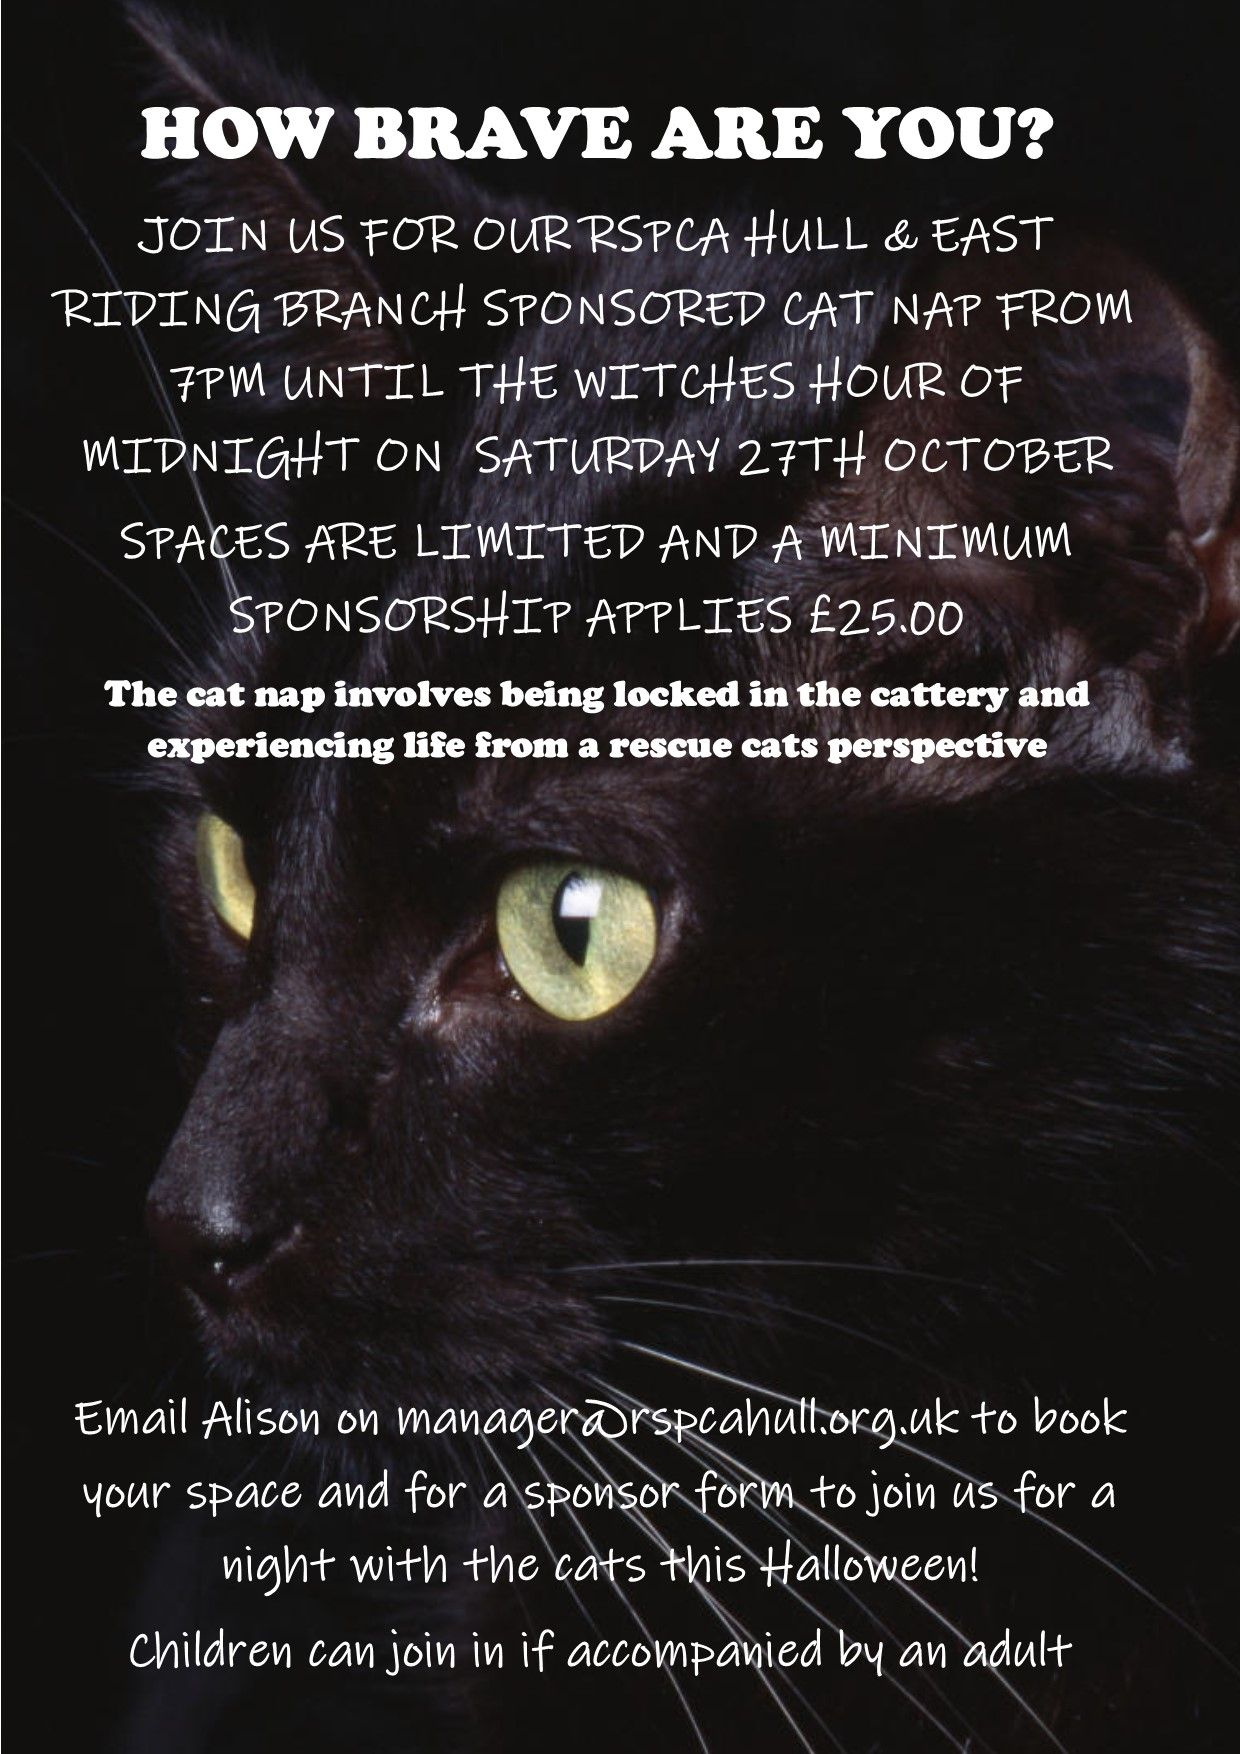 Hull East Riding Branch Events Rspca Org Uk Rspca Event Halloween Event Cat Info